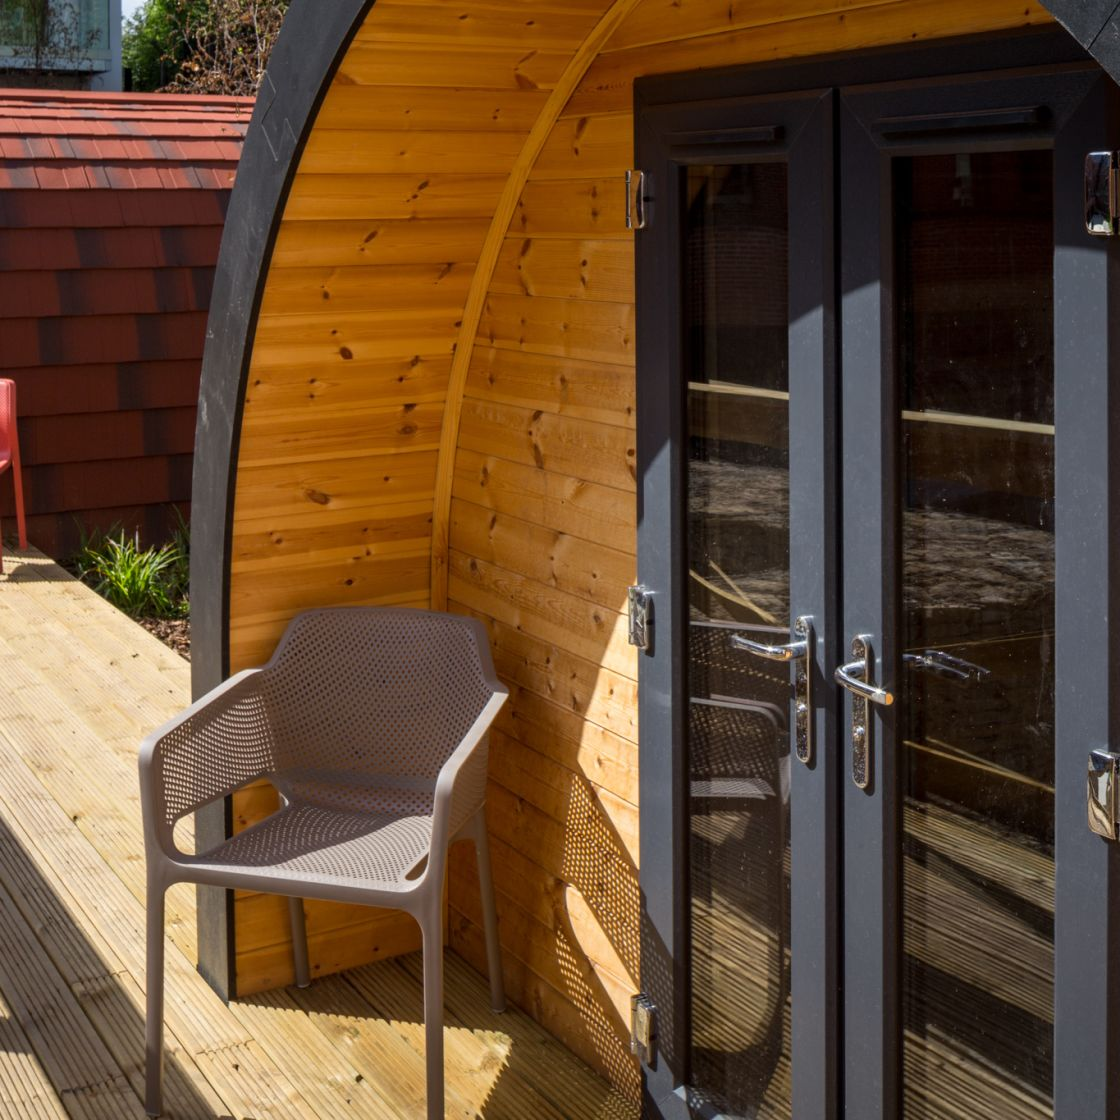 Glamping Pods with outdoor seating at IconInc, The Glassworks. Student Accommodation in Leeds